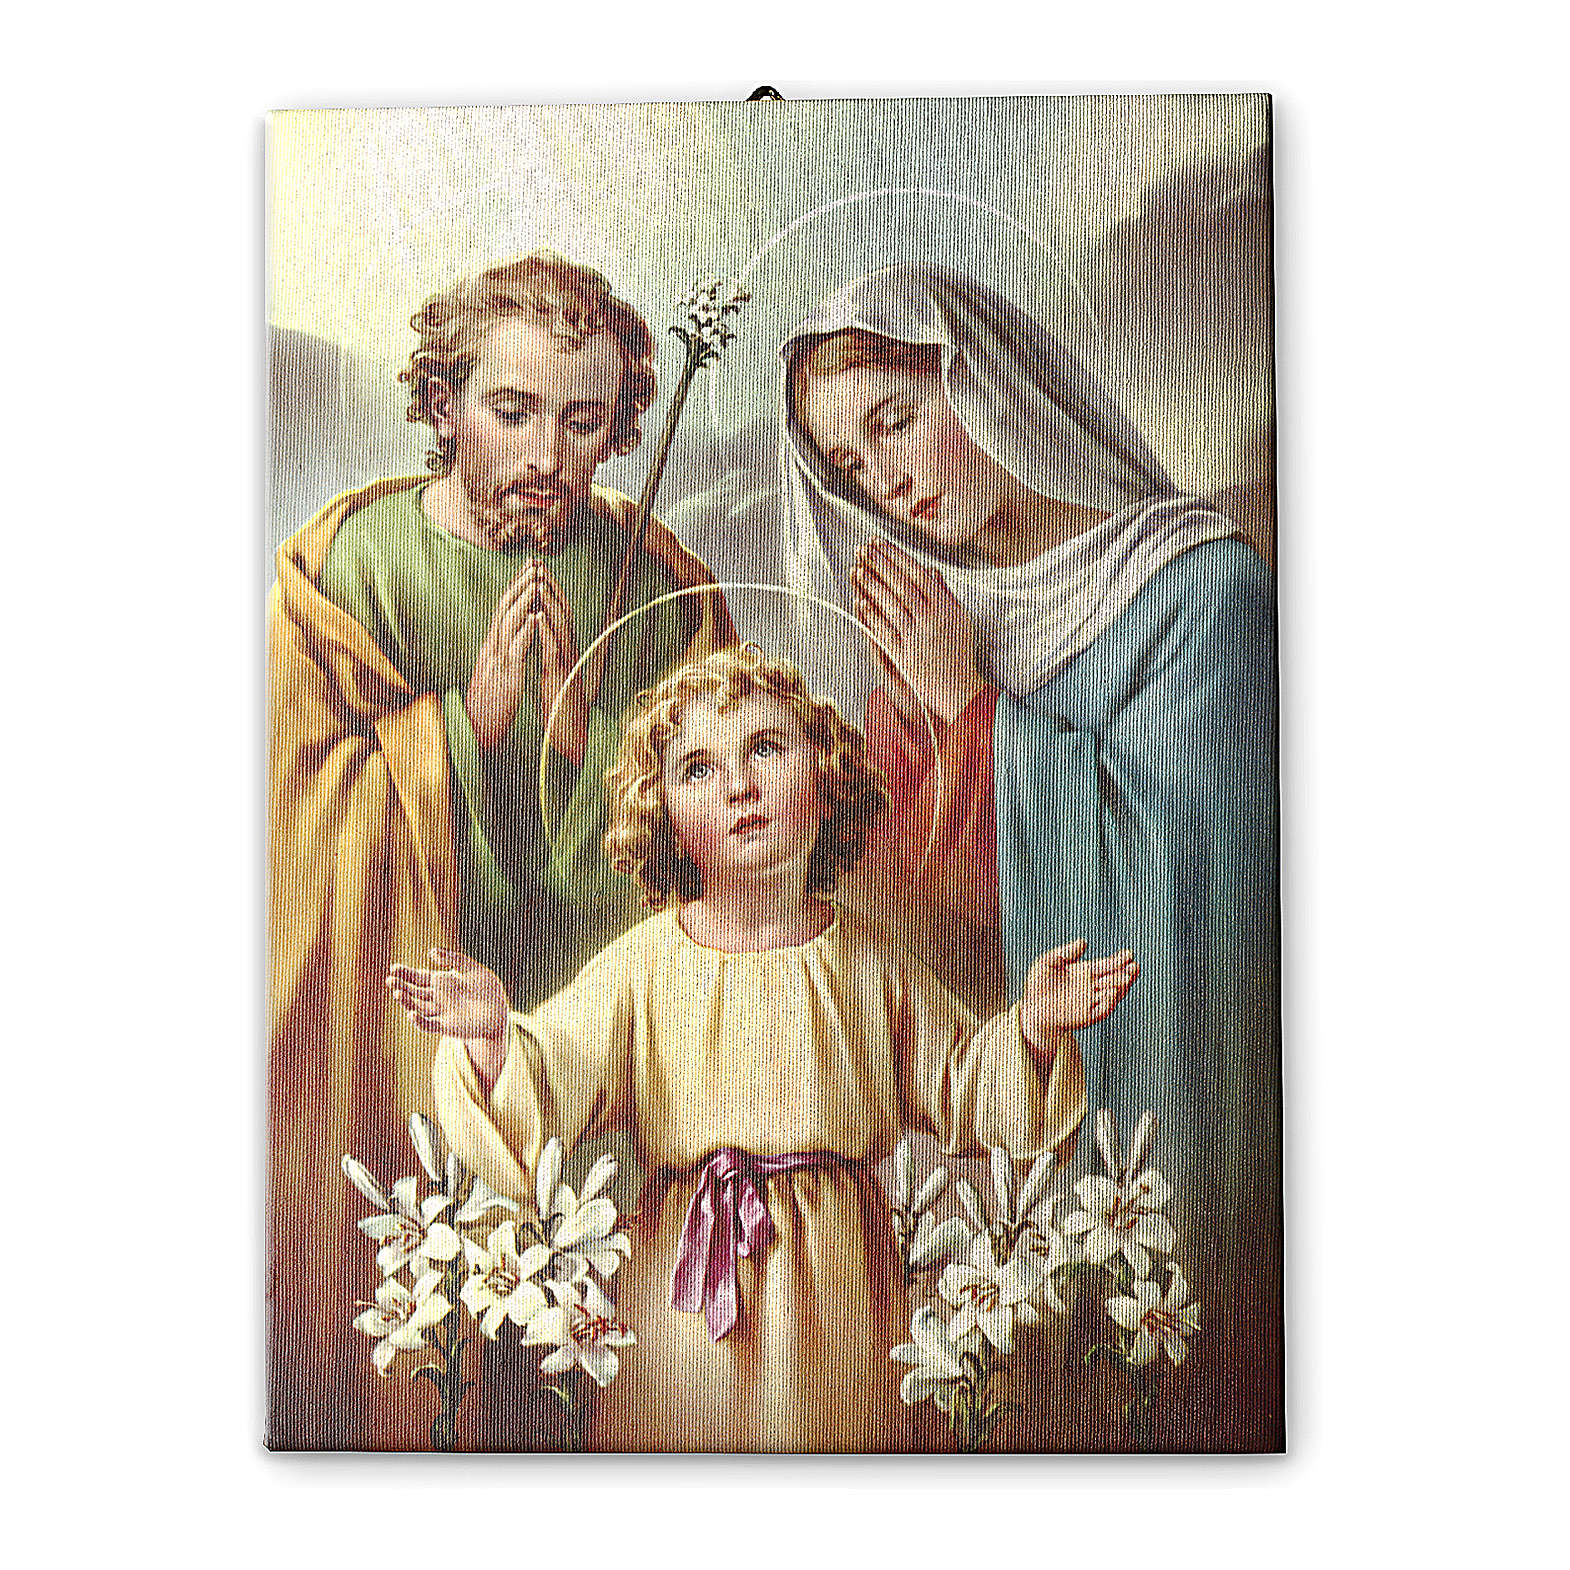 Holy Family of Nazareth printed on canvas 70x50 cm 3